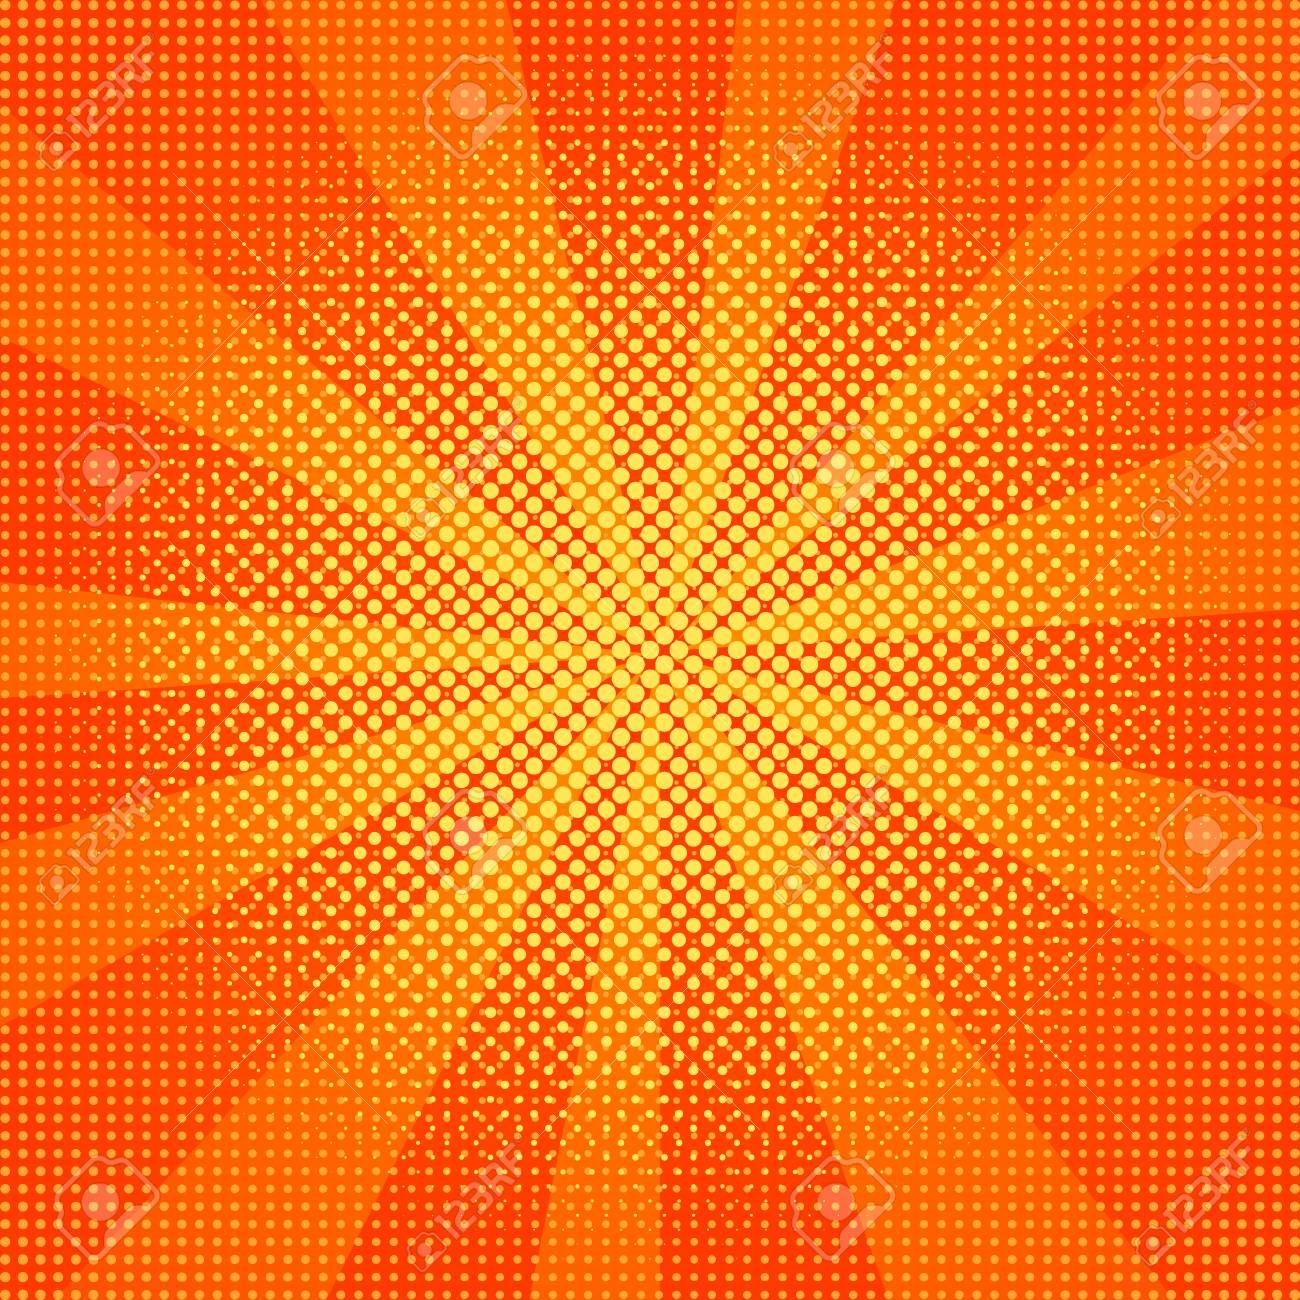 Explosion vector illustration. Sun ray or star burst element. Retro pop art background with dots. Comic book fight stamp for card Superhero action frame background. Light rays. - 109426700